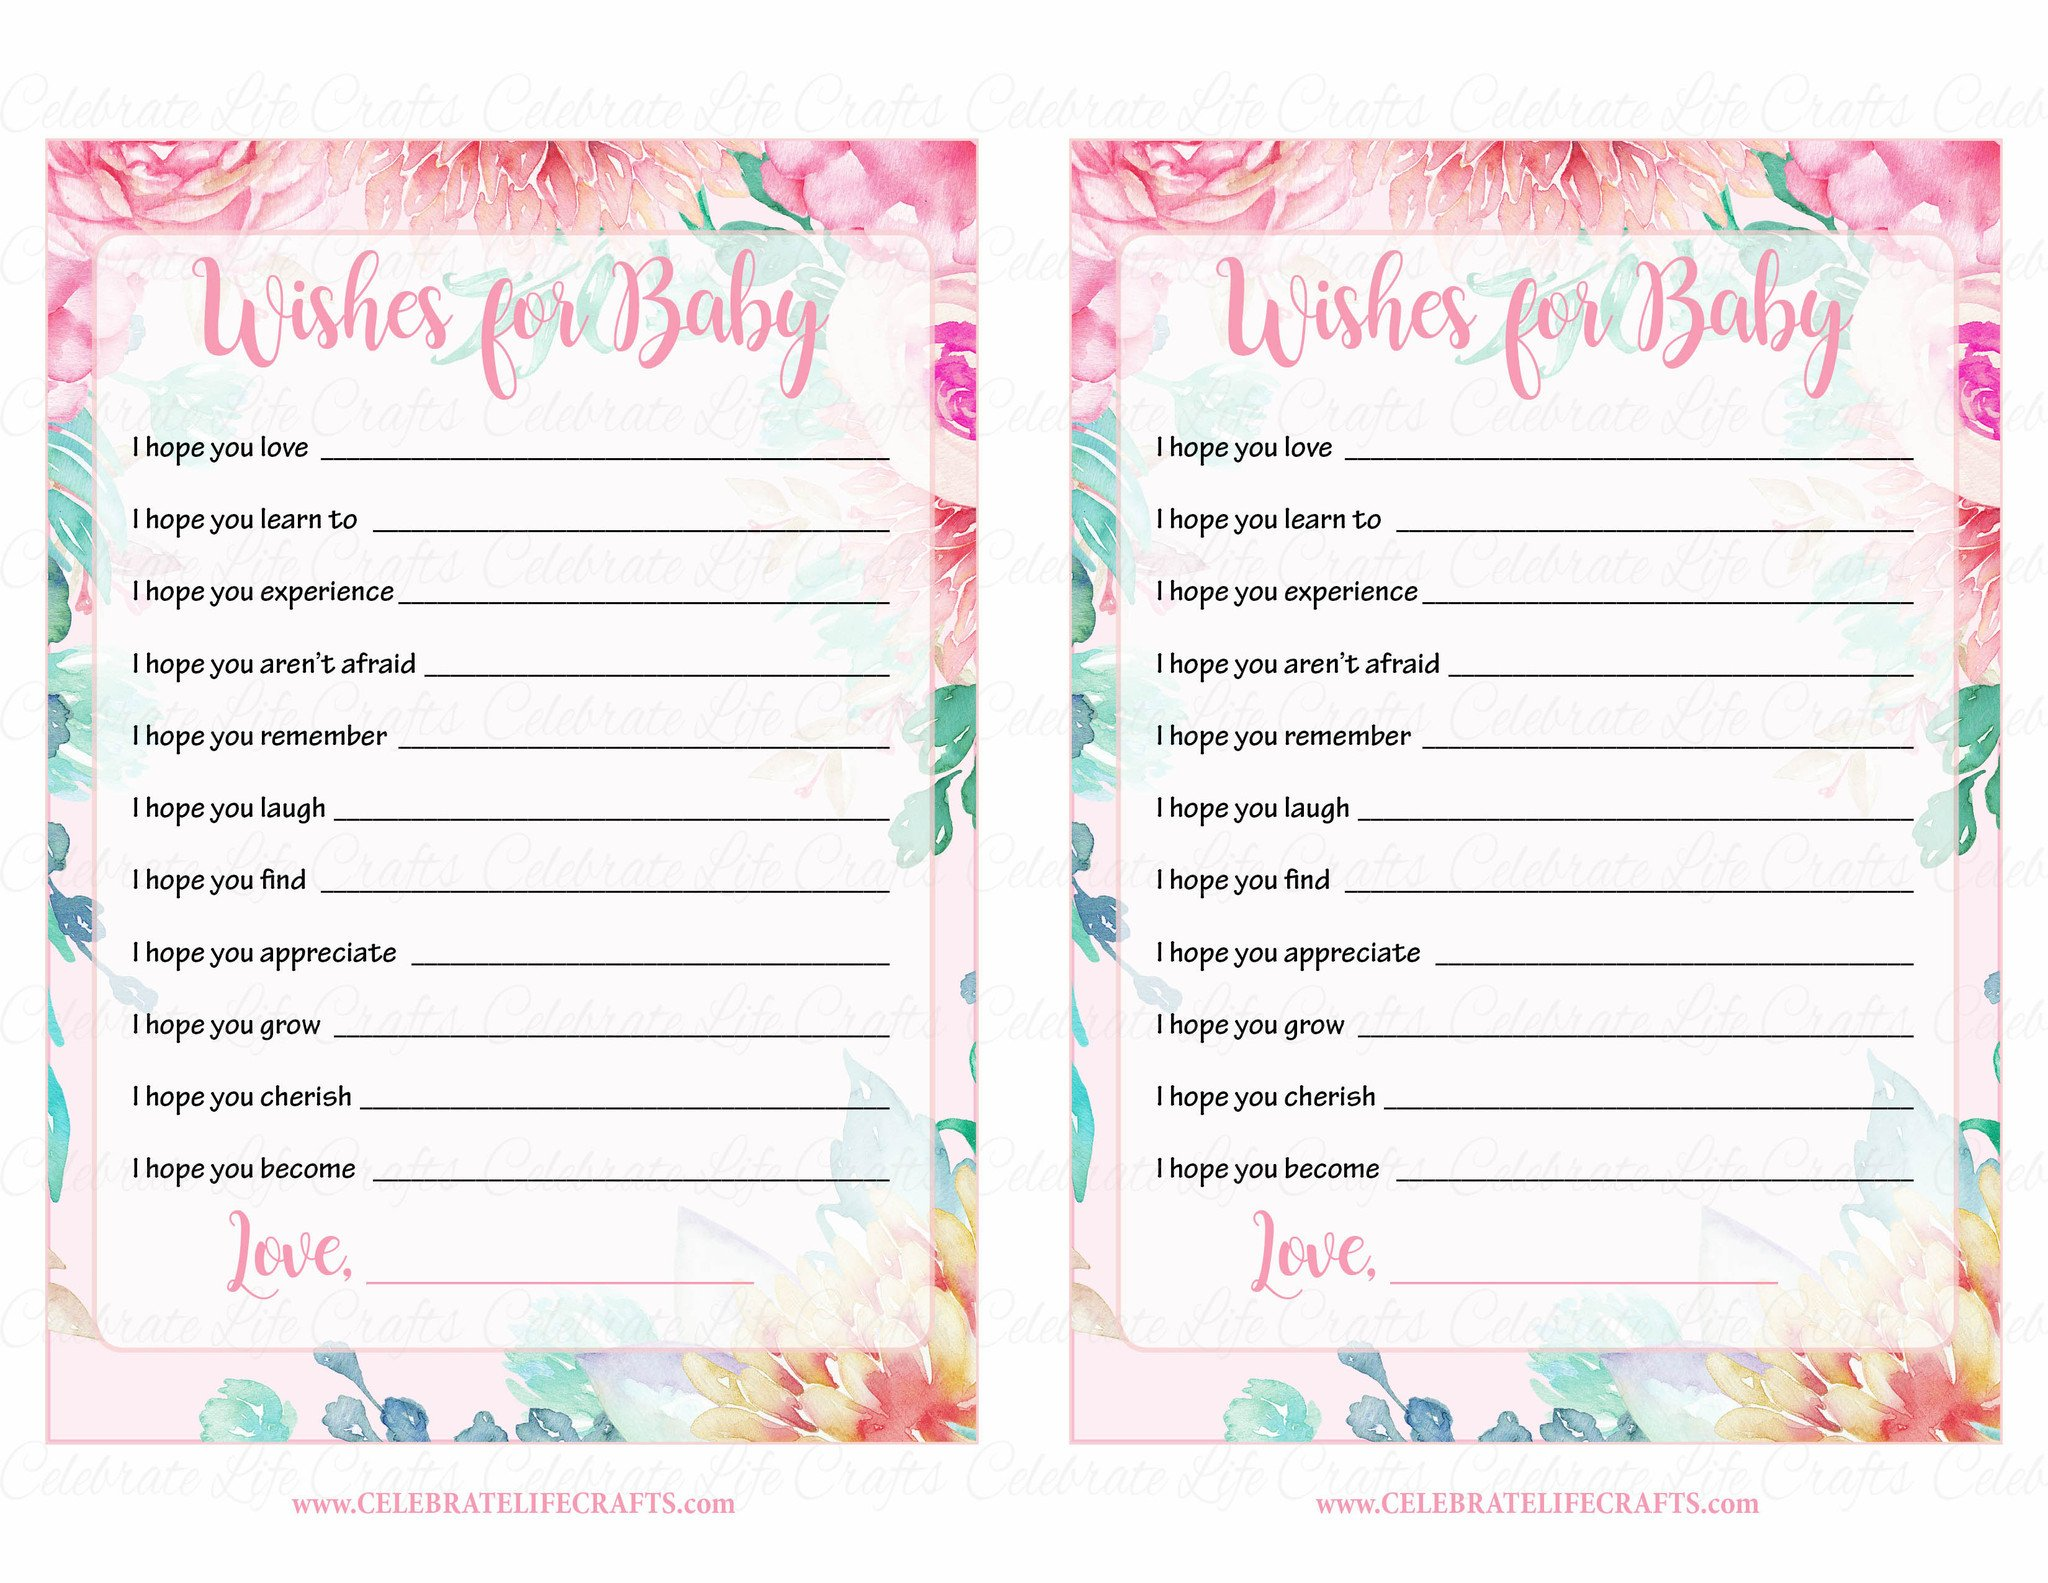 Full Size of Baby Shower:stylish Baby Shower Wishes Picture Inspirations Baby Shower Wishes Wishes For Baby Cards Printable Download Pink Floral Spring Baby Shower Activity B33001